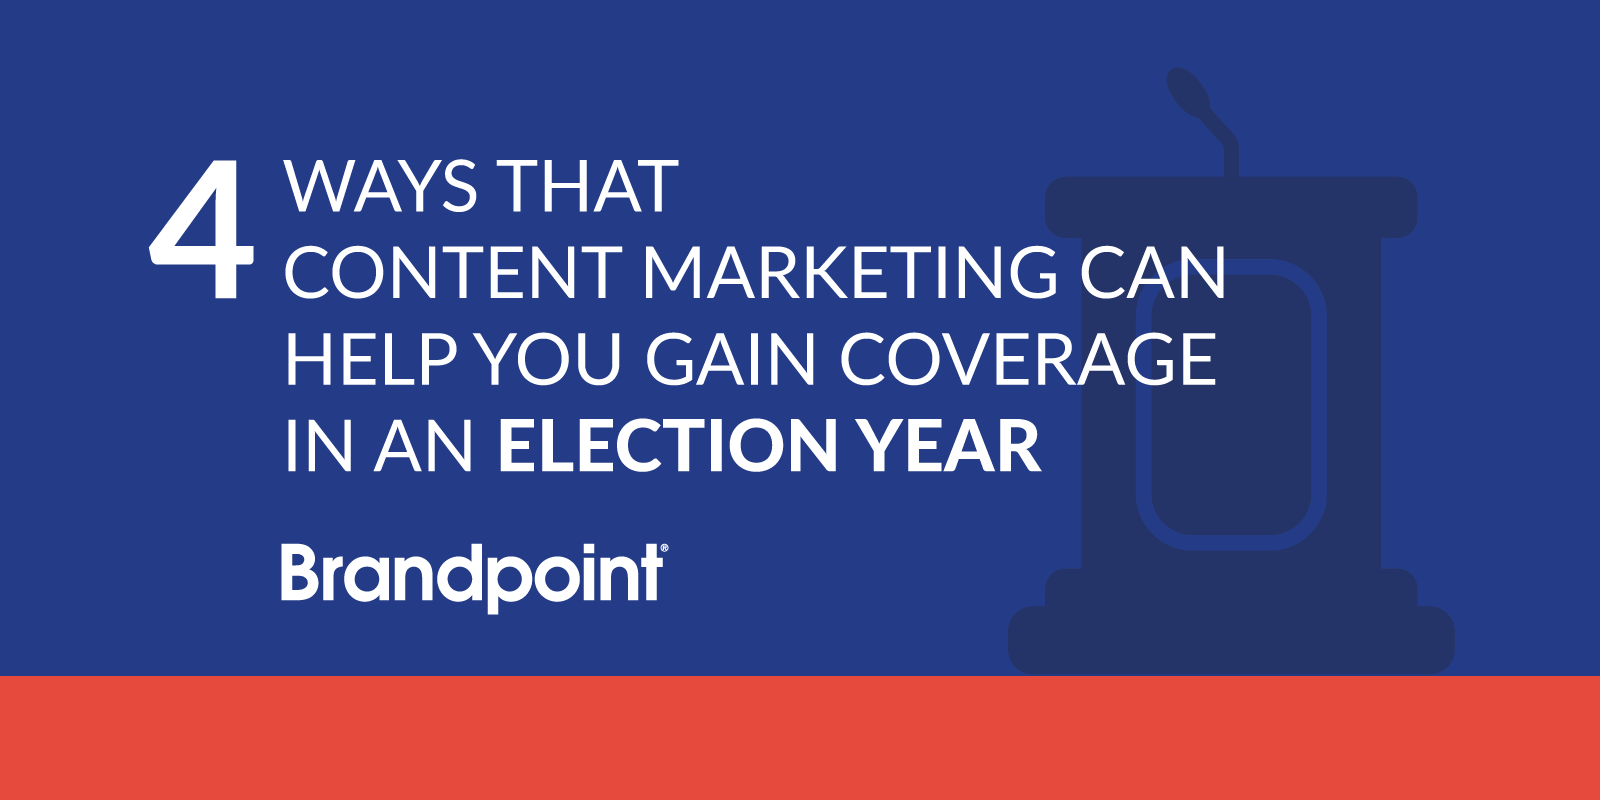 Getting Coverage in an Election Year